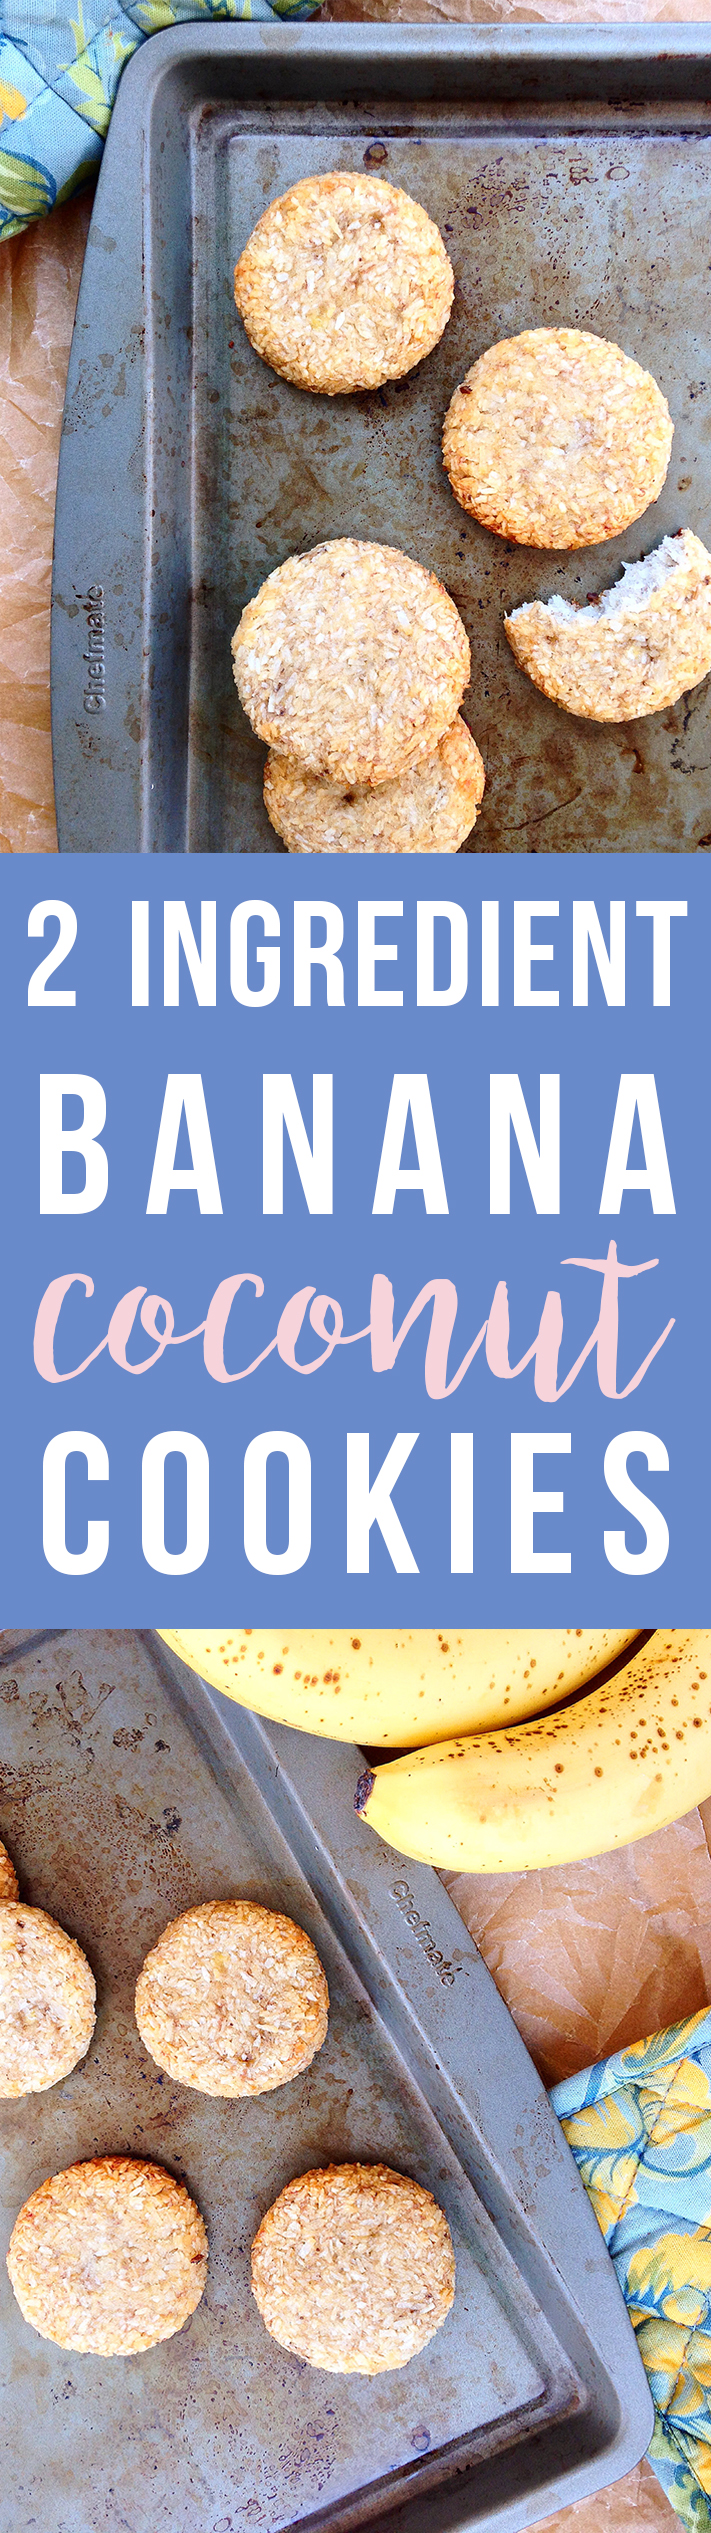 Banana flip cookie recipe